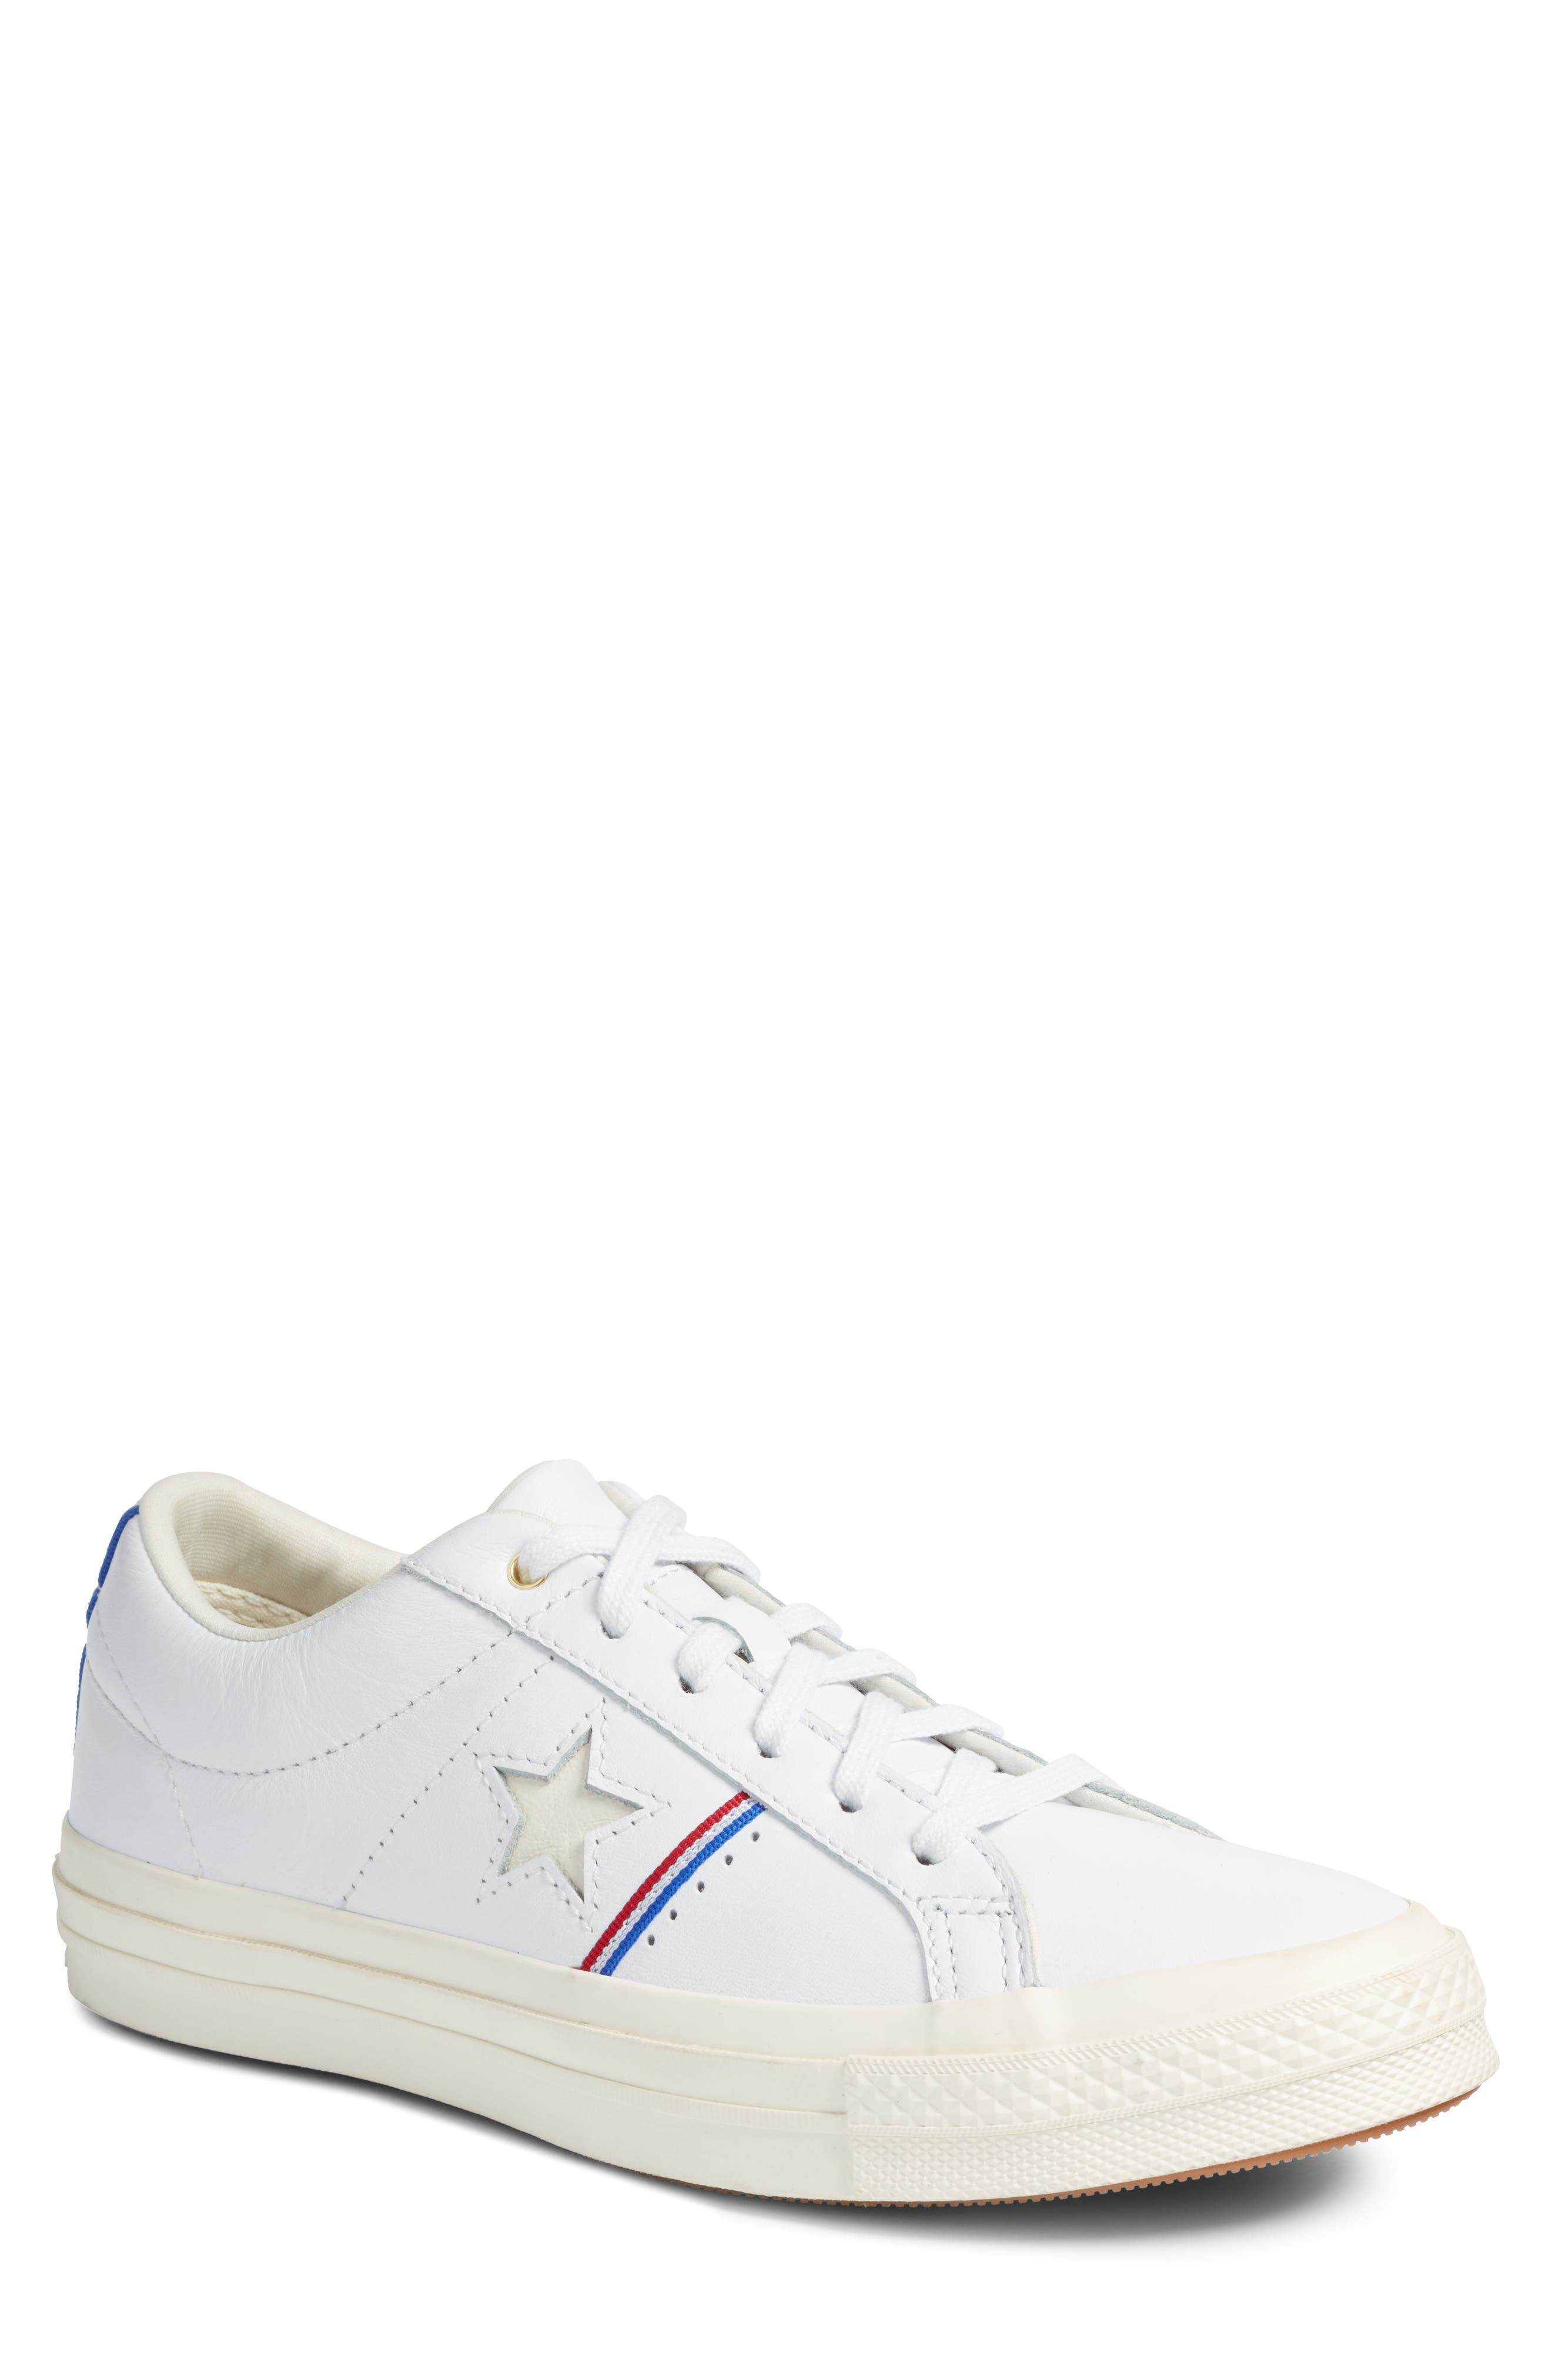 Main Image - Converse Chuck Taylor® All Star® One-Star Sneaker (Men)